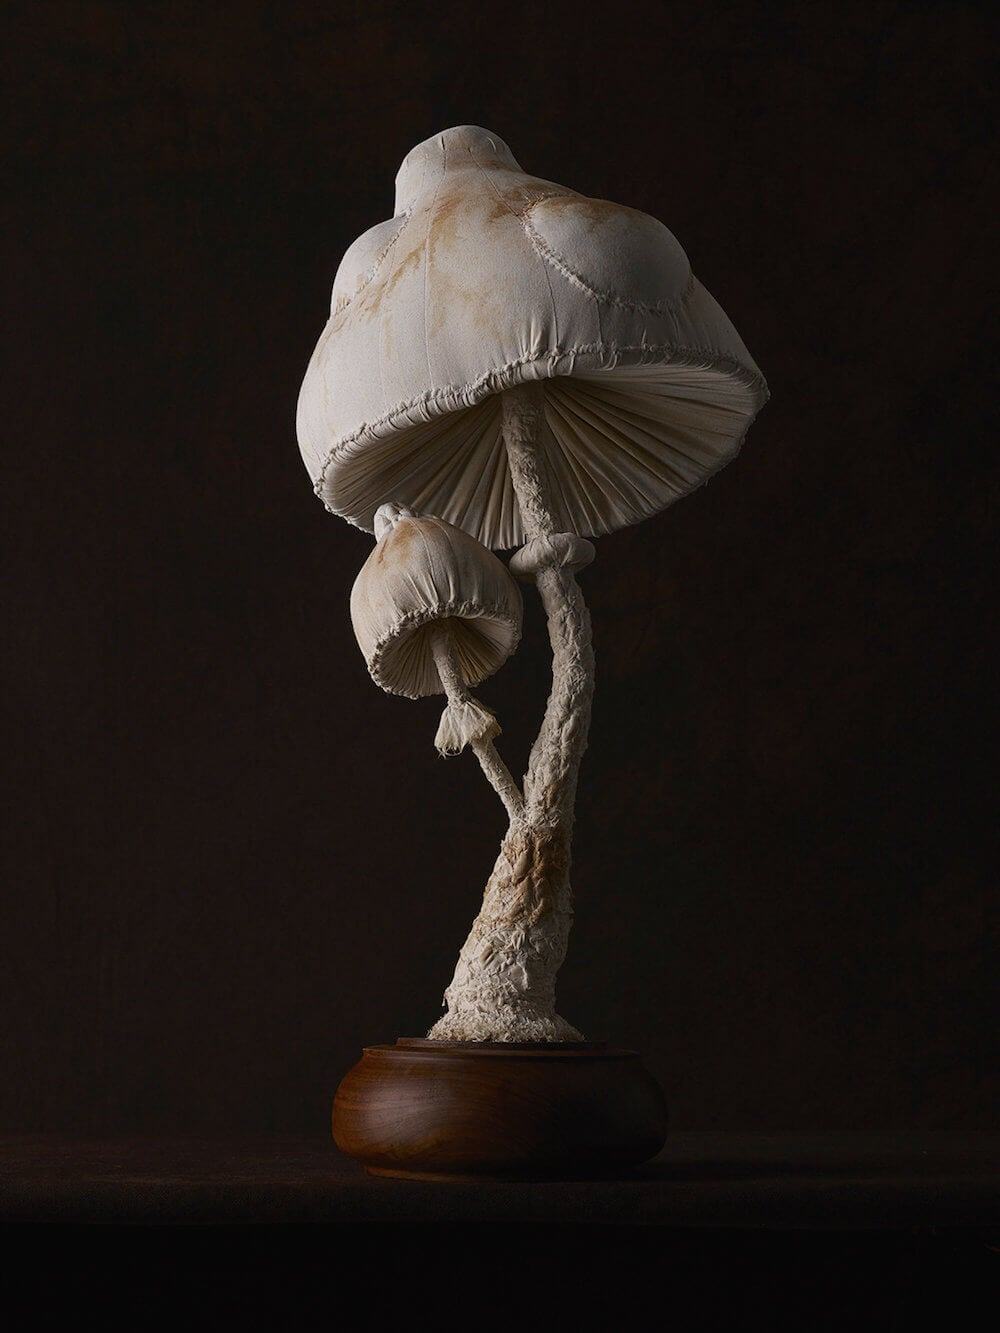 Artist Creates Toadstool Sculptures Crafted From Vintage Textiles -sculpture, plants, mushrooms